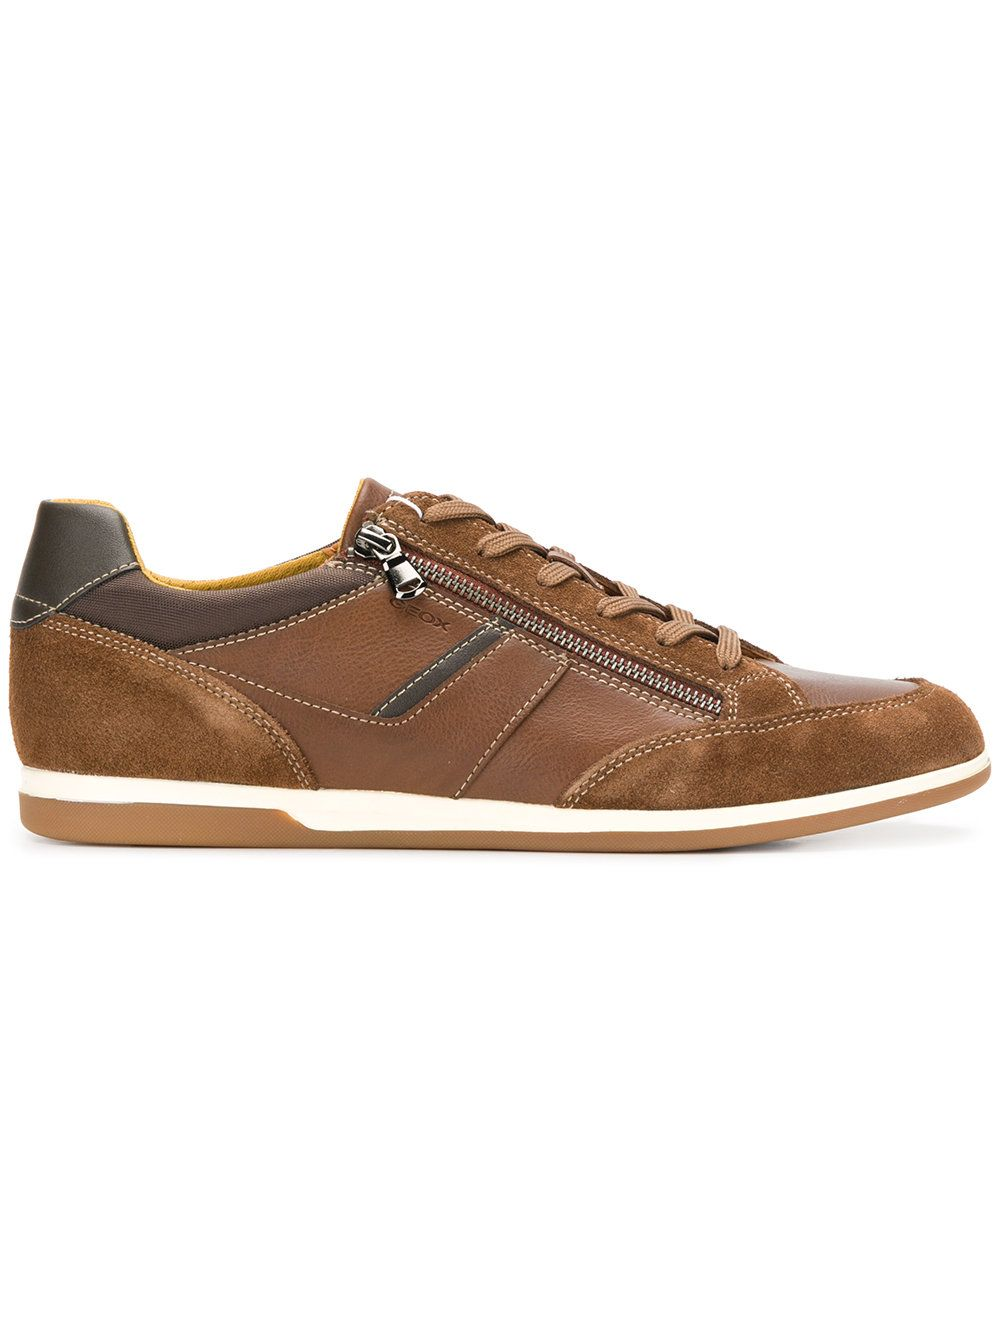 online cheap price extremely online Geox lace-up fastened flat sneakers discount for nice V4crOEKCS1